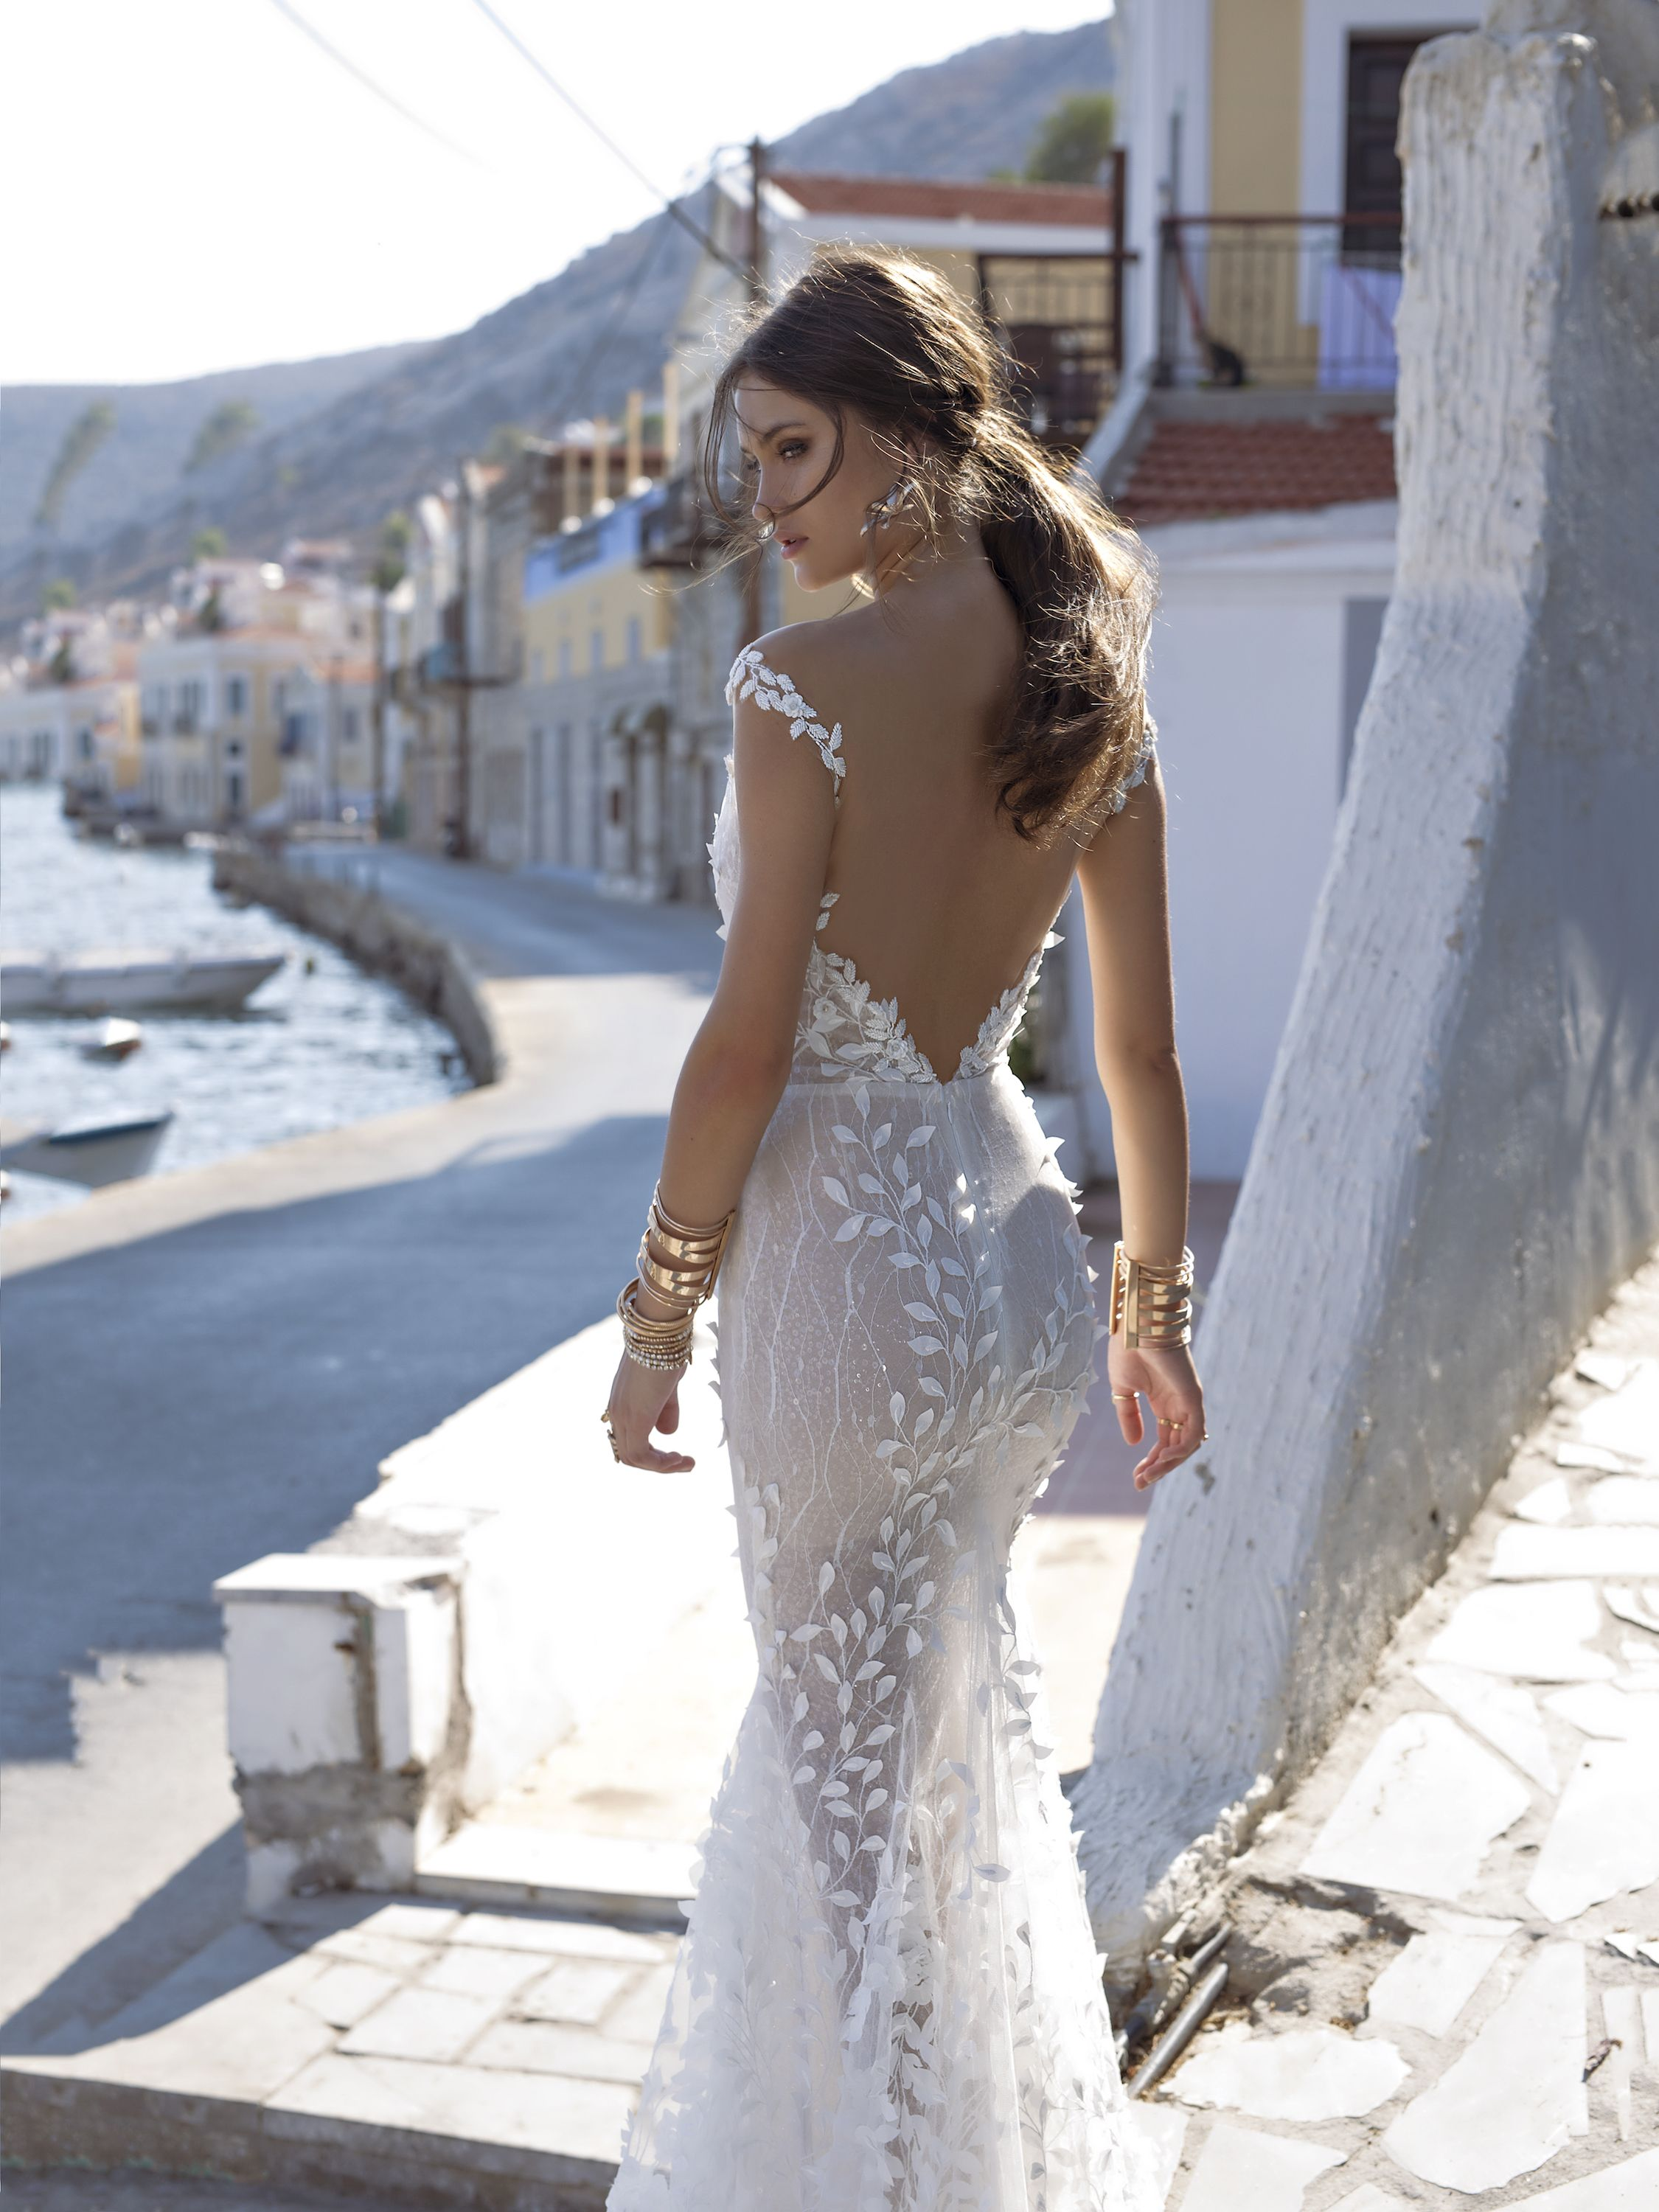 e0b30506245 Delta is a timeless design intended to create an effortless touch to the Lian  Rokman brides  perfect day. This double lace gown is grounded in peach  lining ...